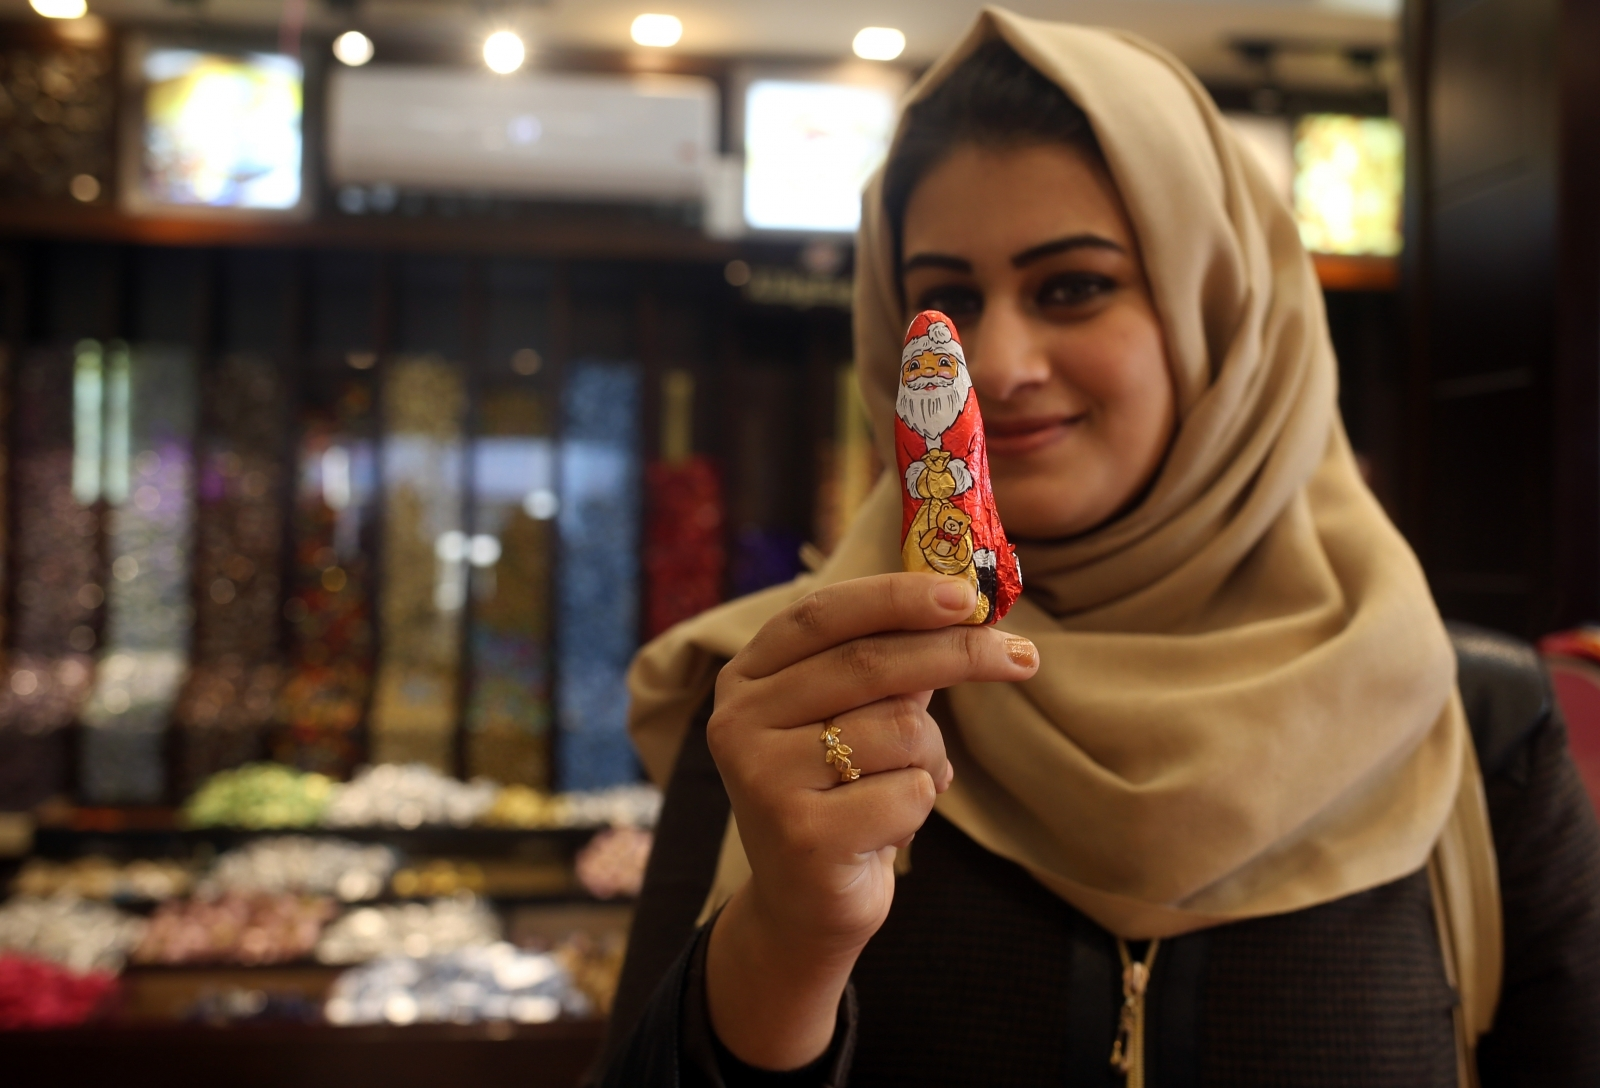 A Muslim woman with a Santa chocolate